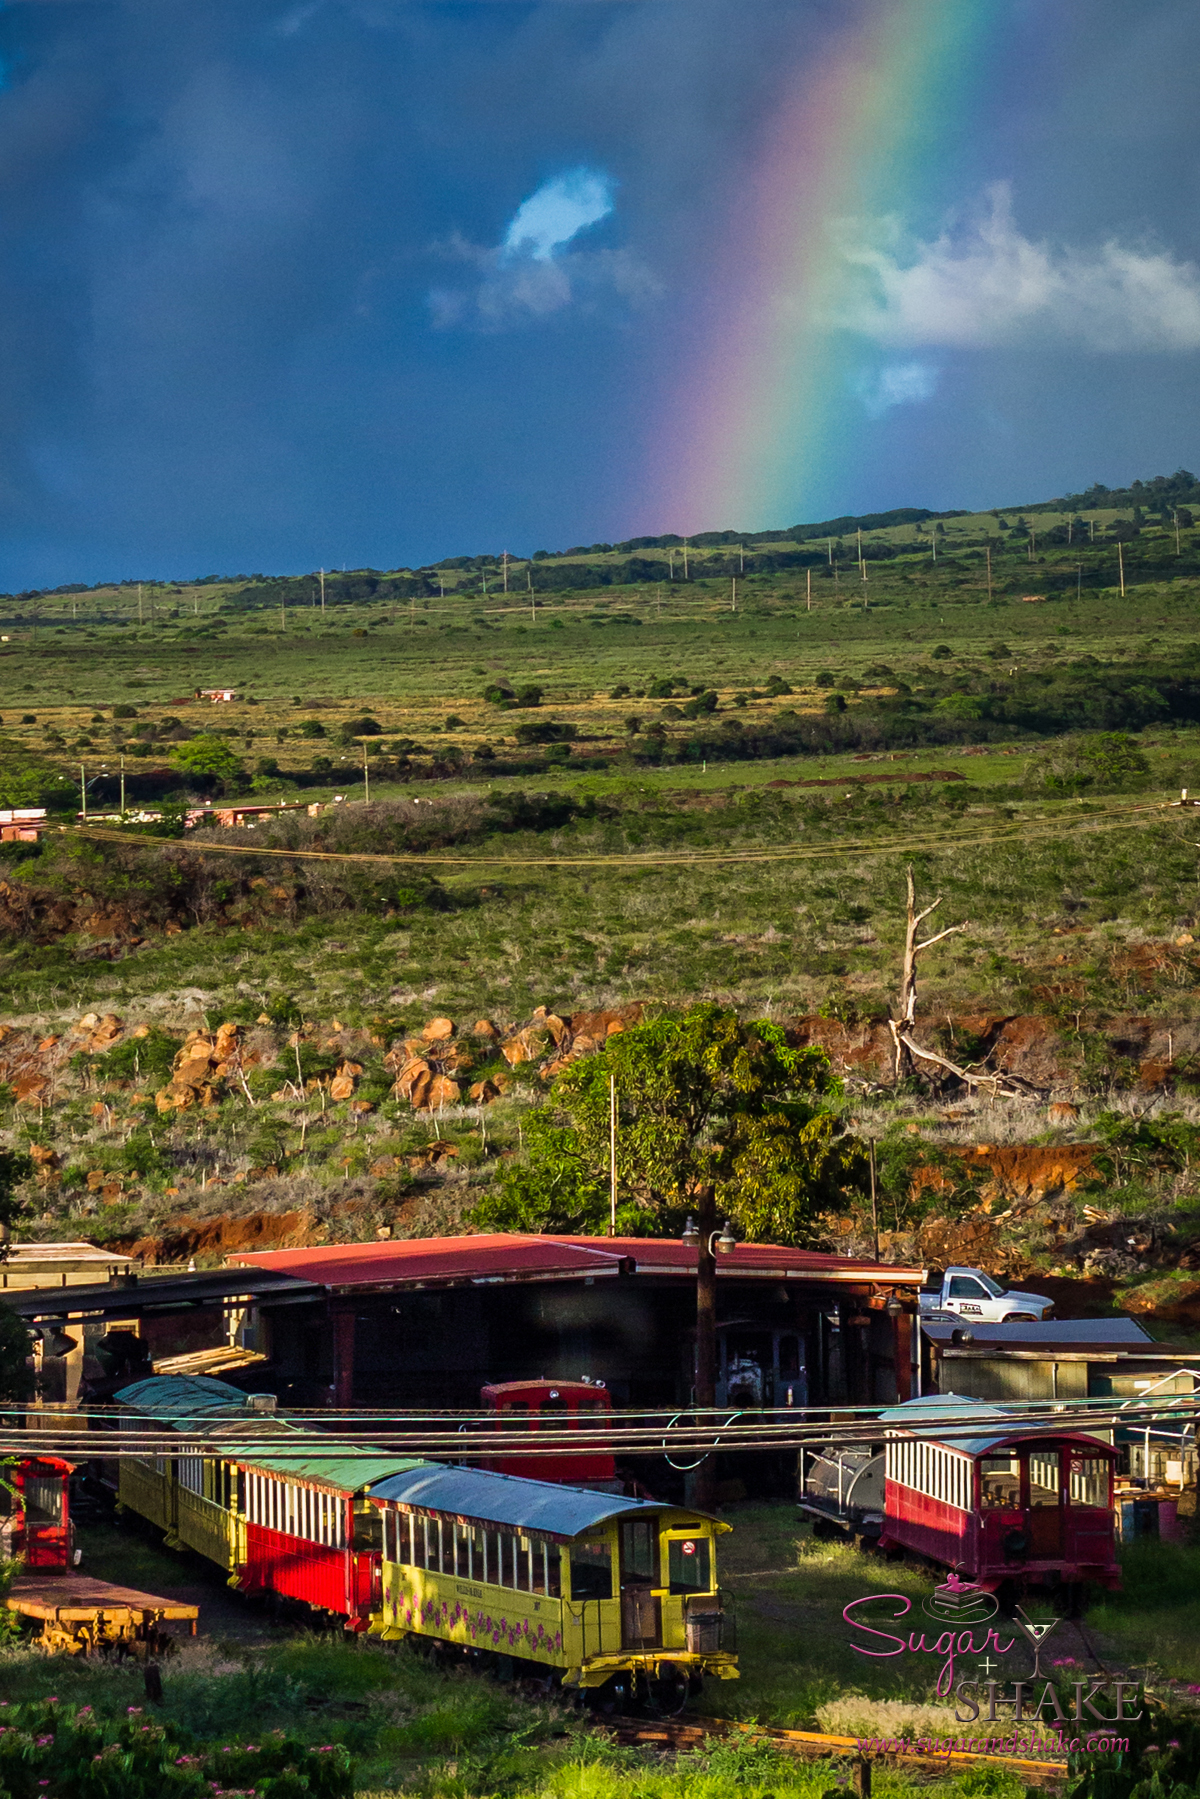 Rainbow over West Maui, taken during #KFRESH13 weekend. © 2013 Sugar + Shake